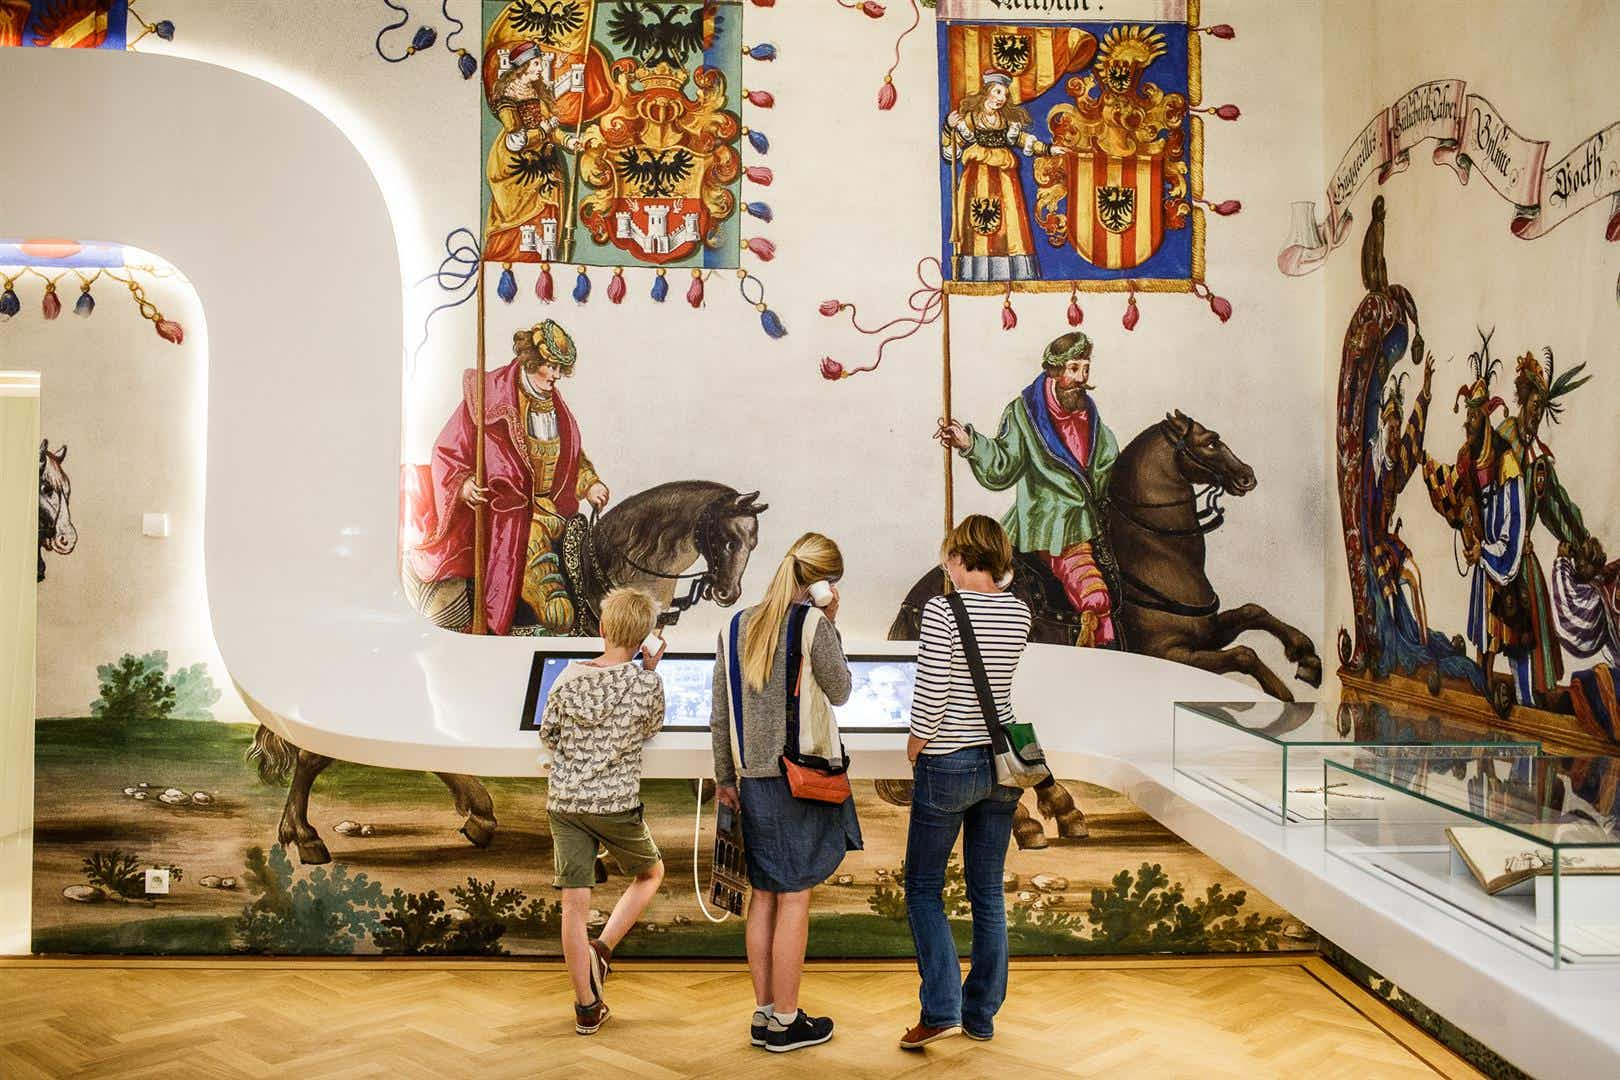 Explore Renaissance life at this newly opened Belgian museum